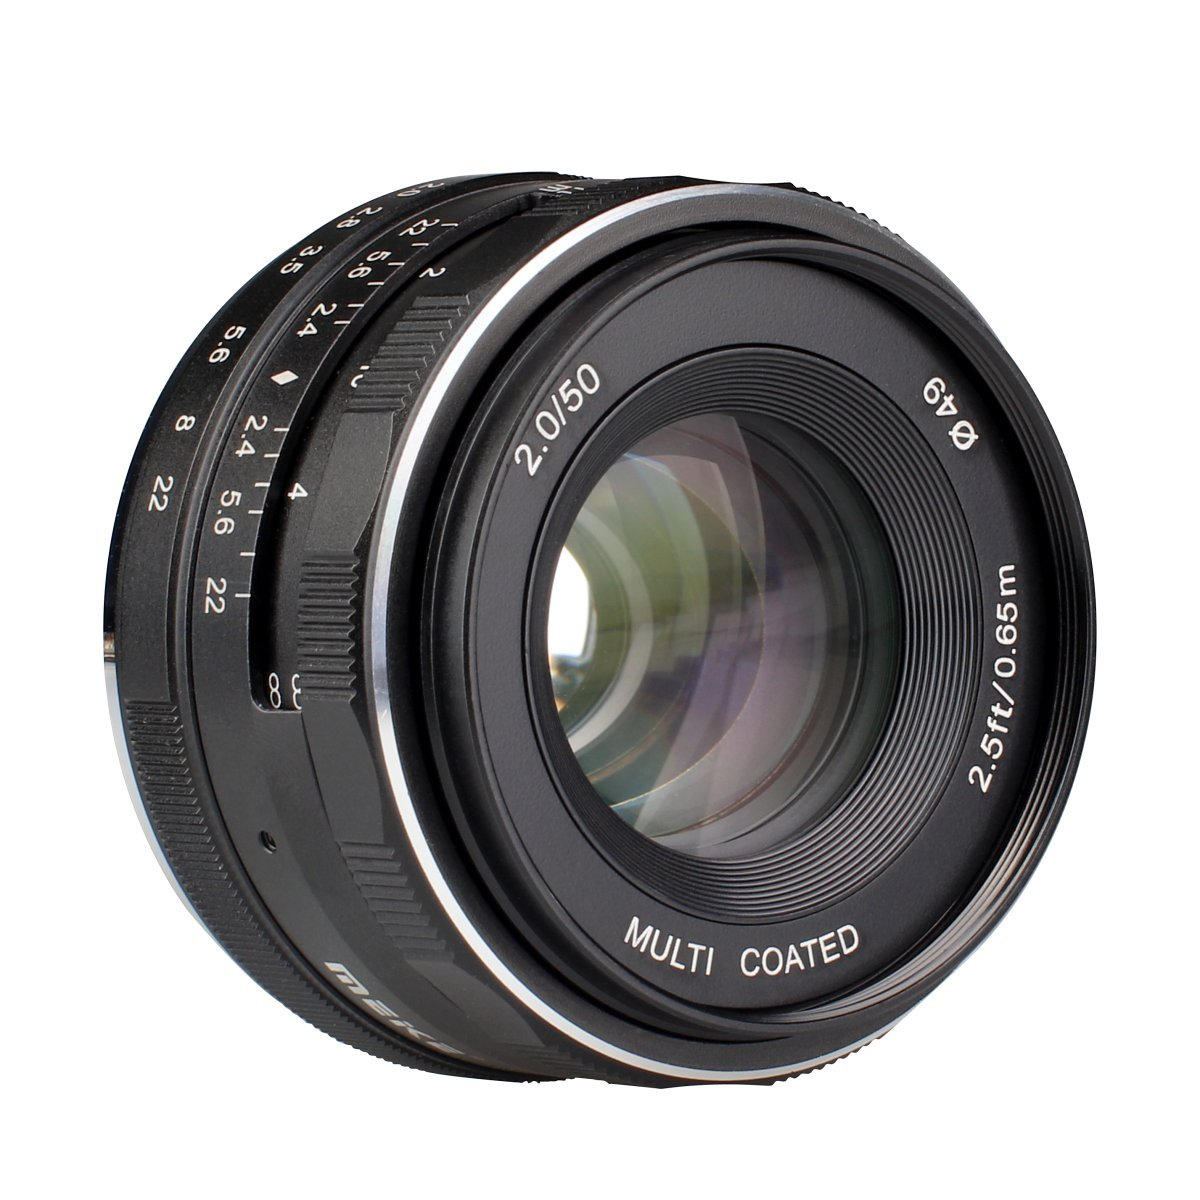 Meike 50mm f/2.0 Manual Focus Fixed Lens for Fujifilm-FX Mount Digital Cameras (X-A1/A2,X-e1/e2/e2s,X-M1,X-T1/T10,X-pro1/pro2 etc) by Meike